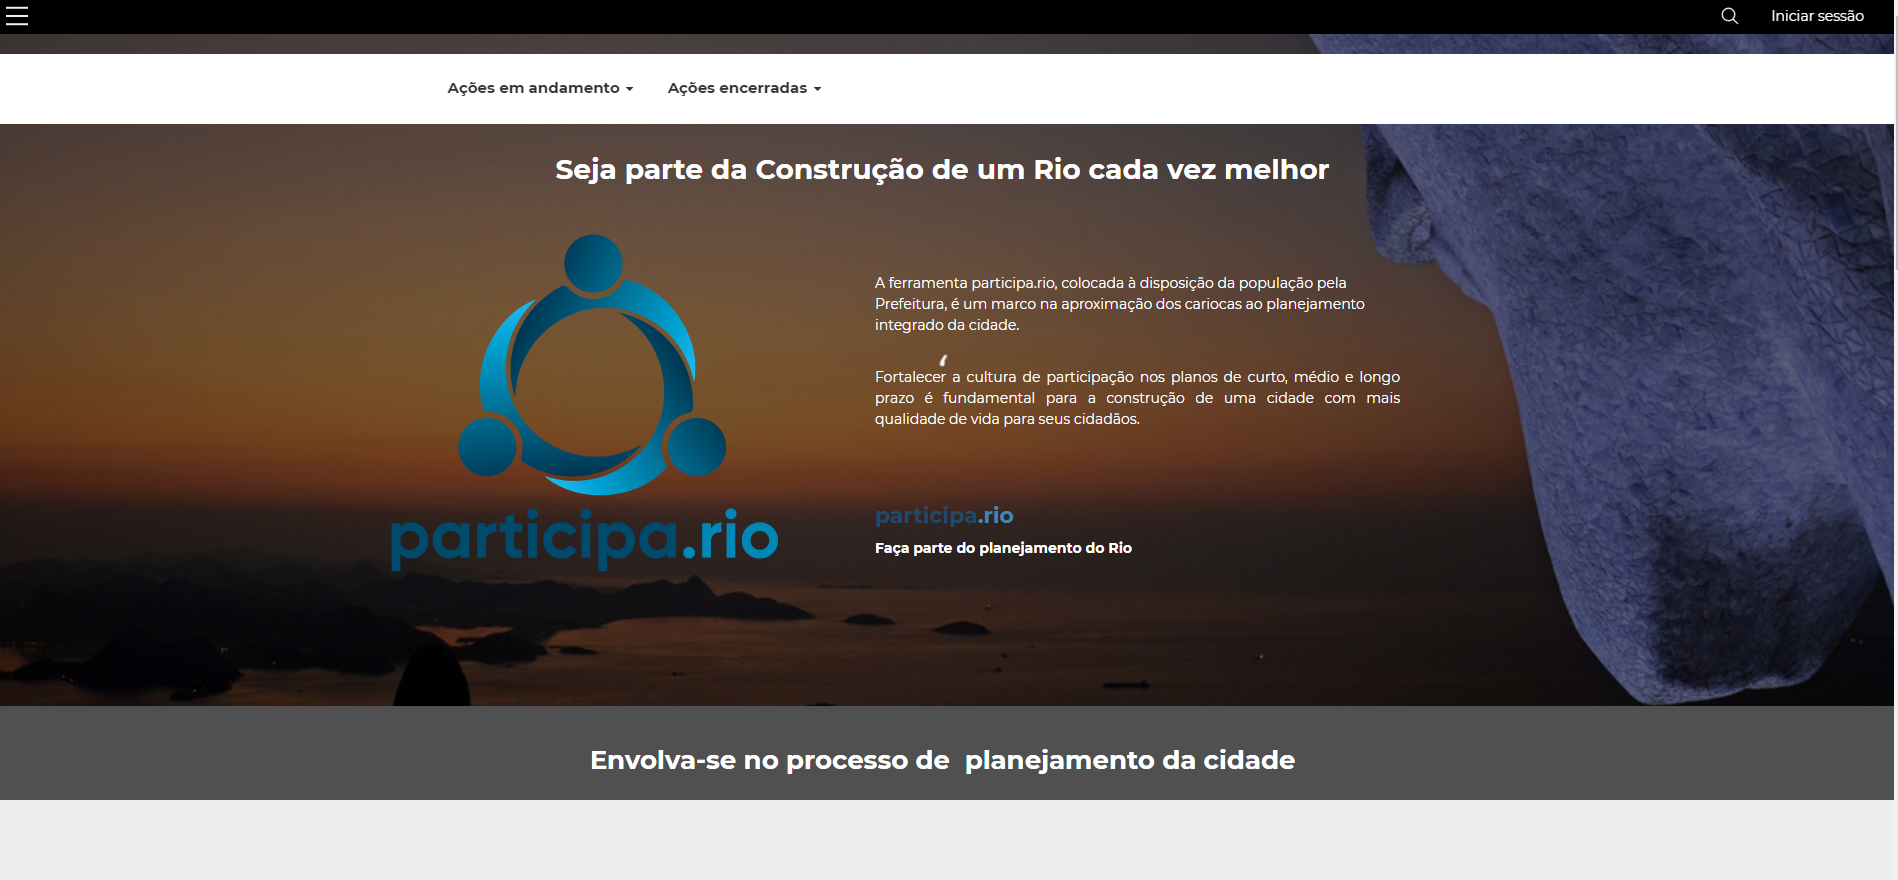 Social participation for the construction of the Sustainable Development and Climate Action Plan of the City of Rio de Janeiro